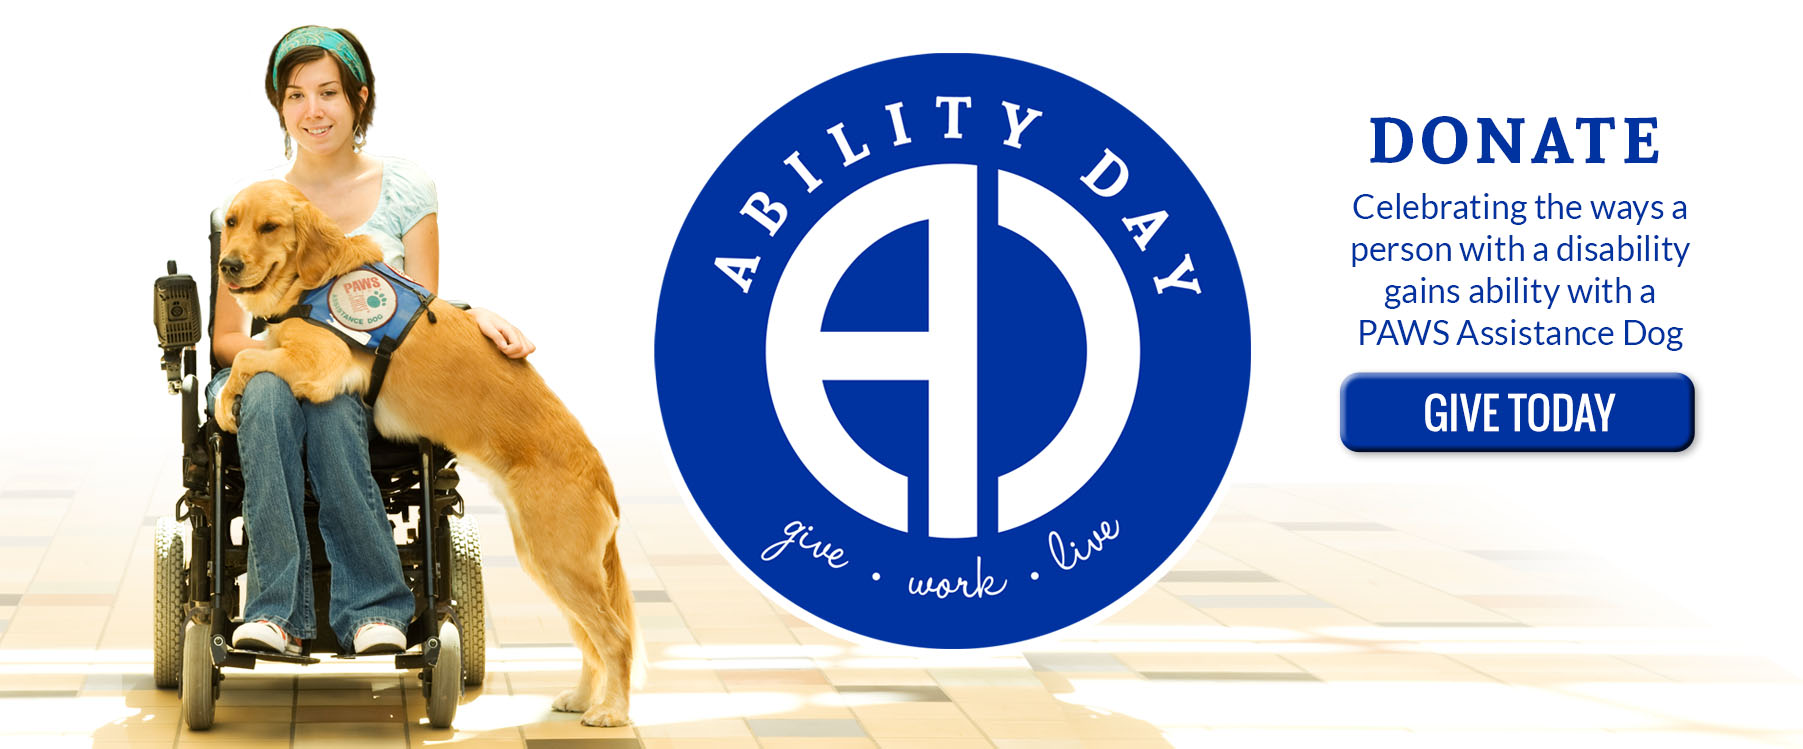 Ability Day Campaign